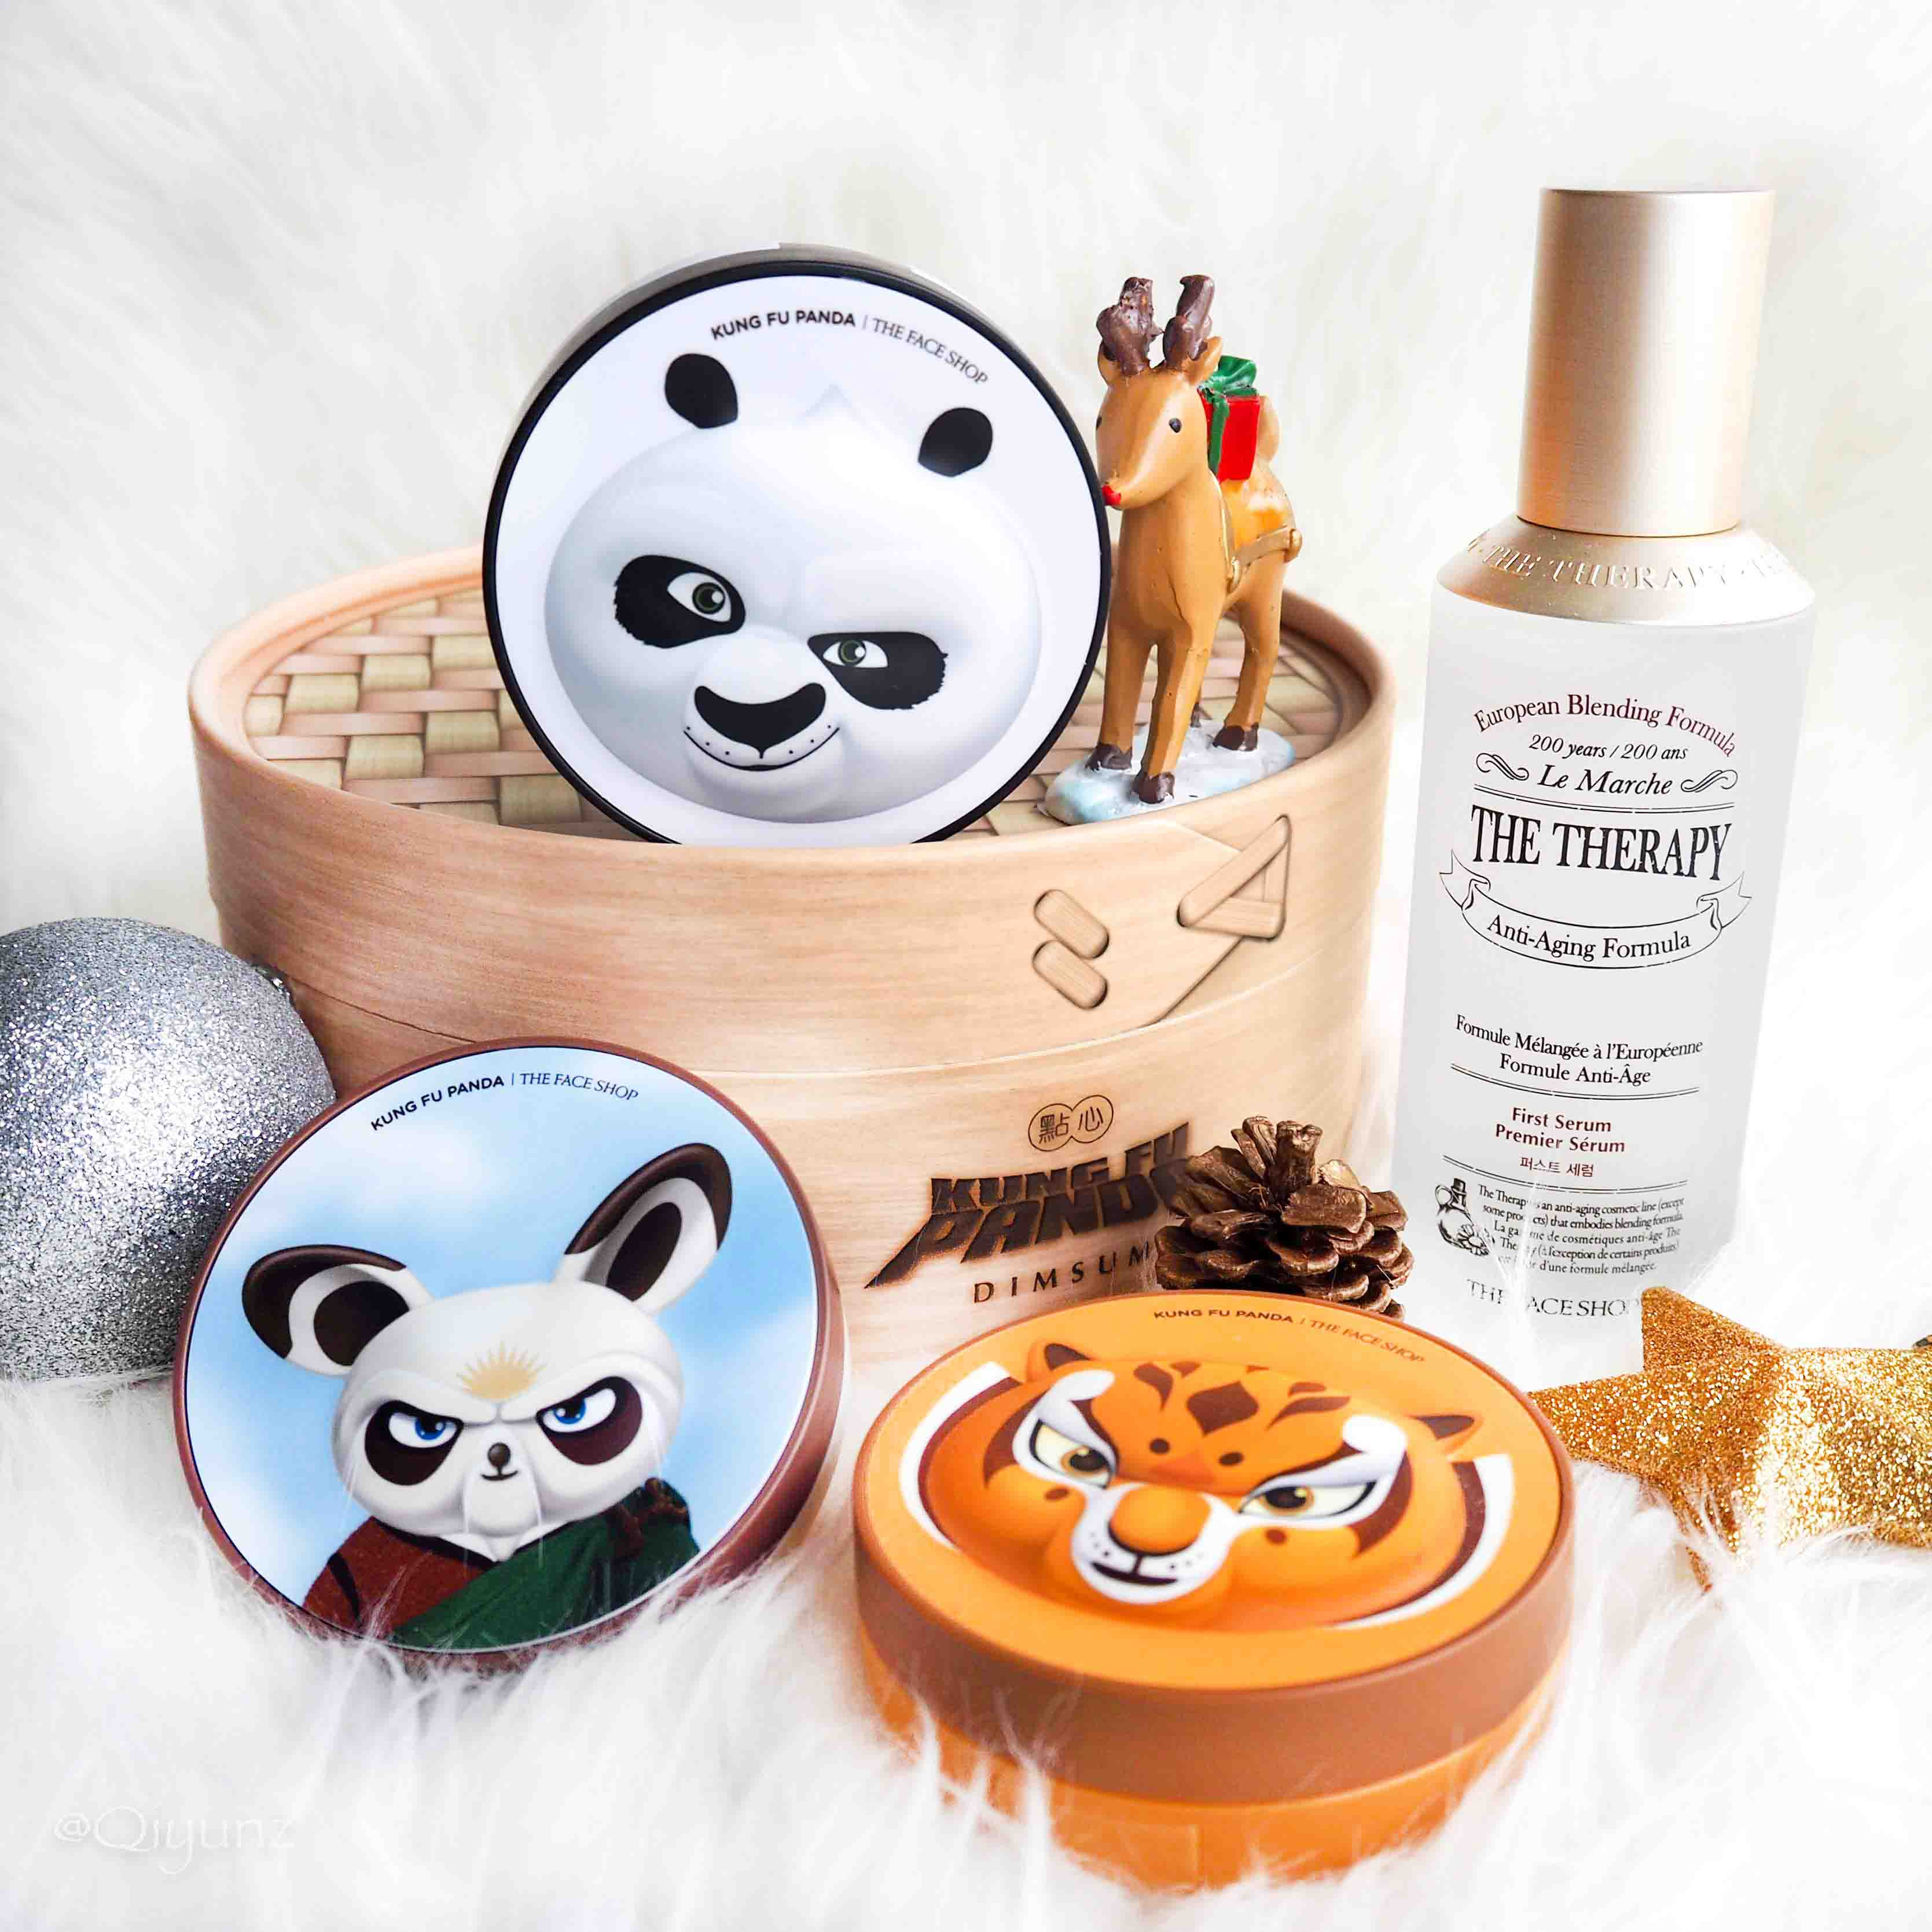 Korean Beauty Christmas Gift Guide